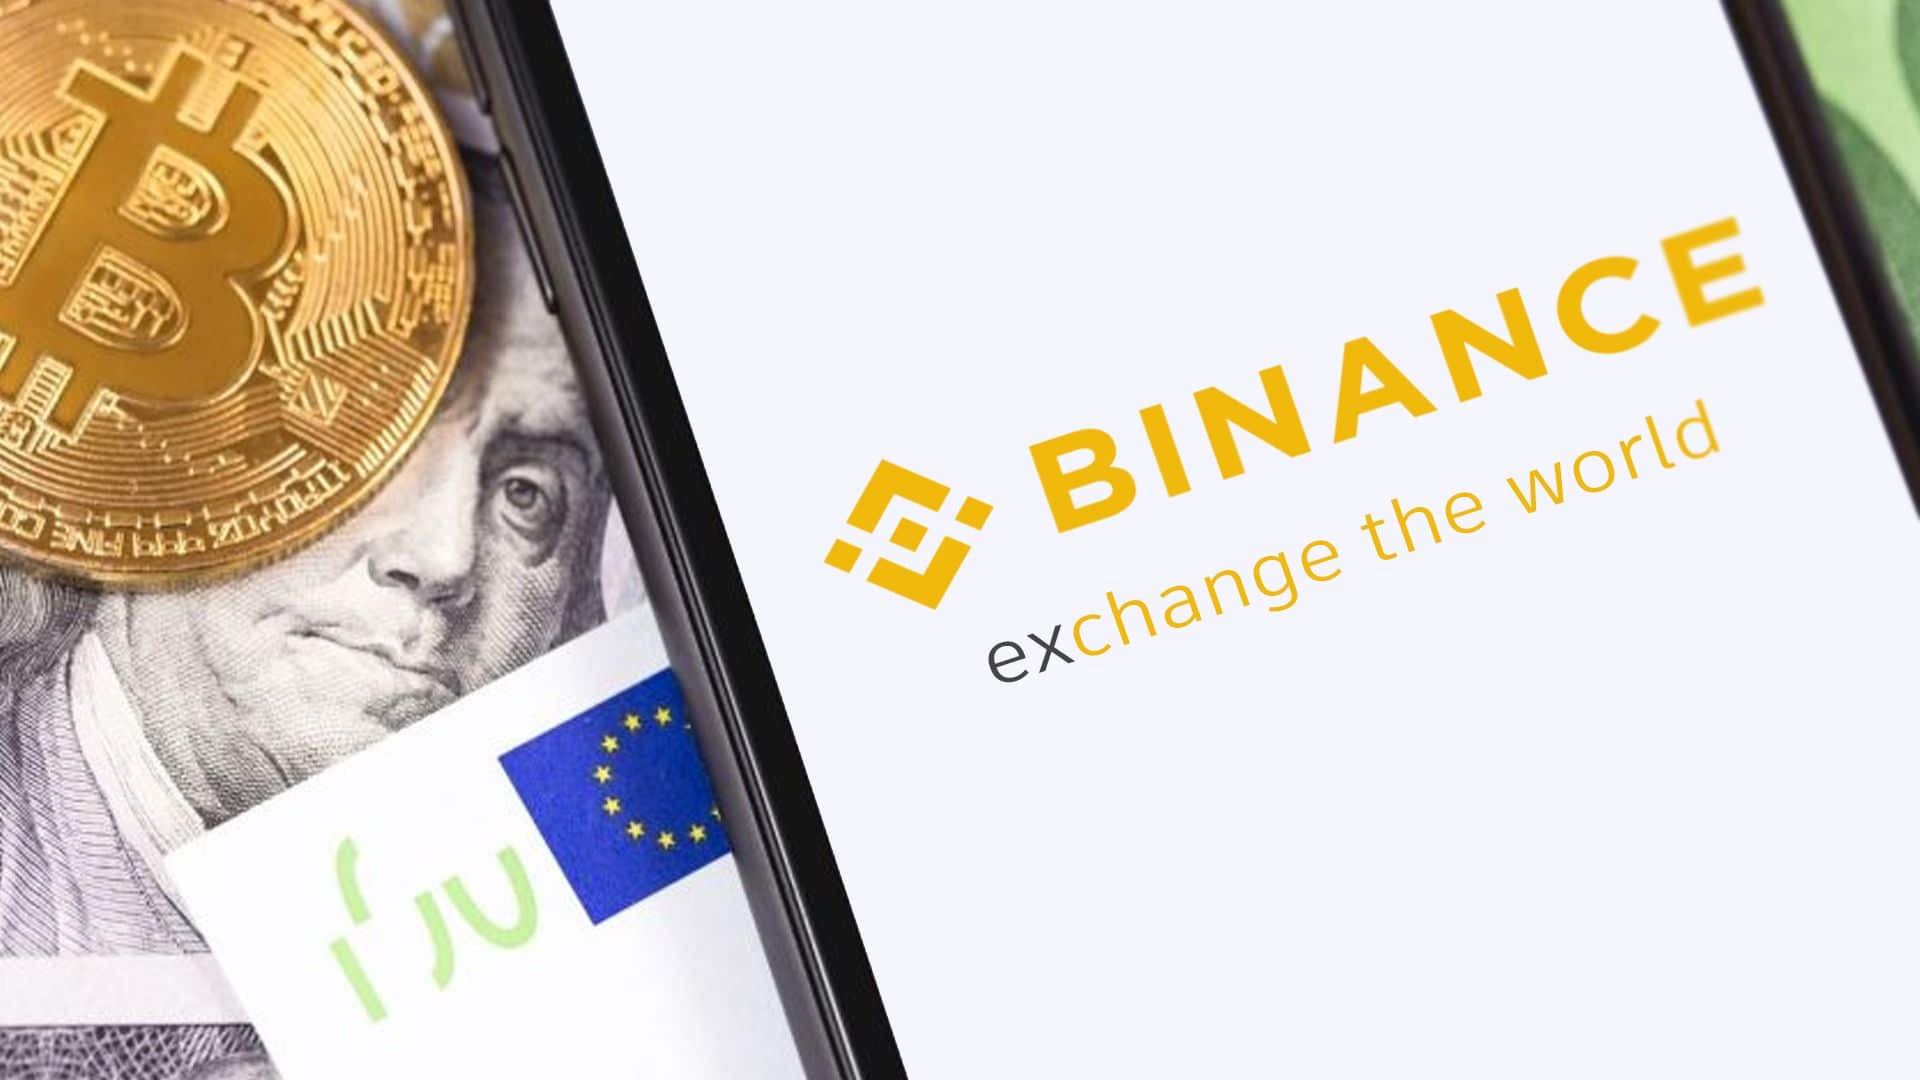 Tutorial de cómo comprar Bitcoins en Binance.